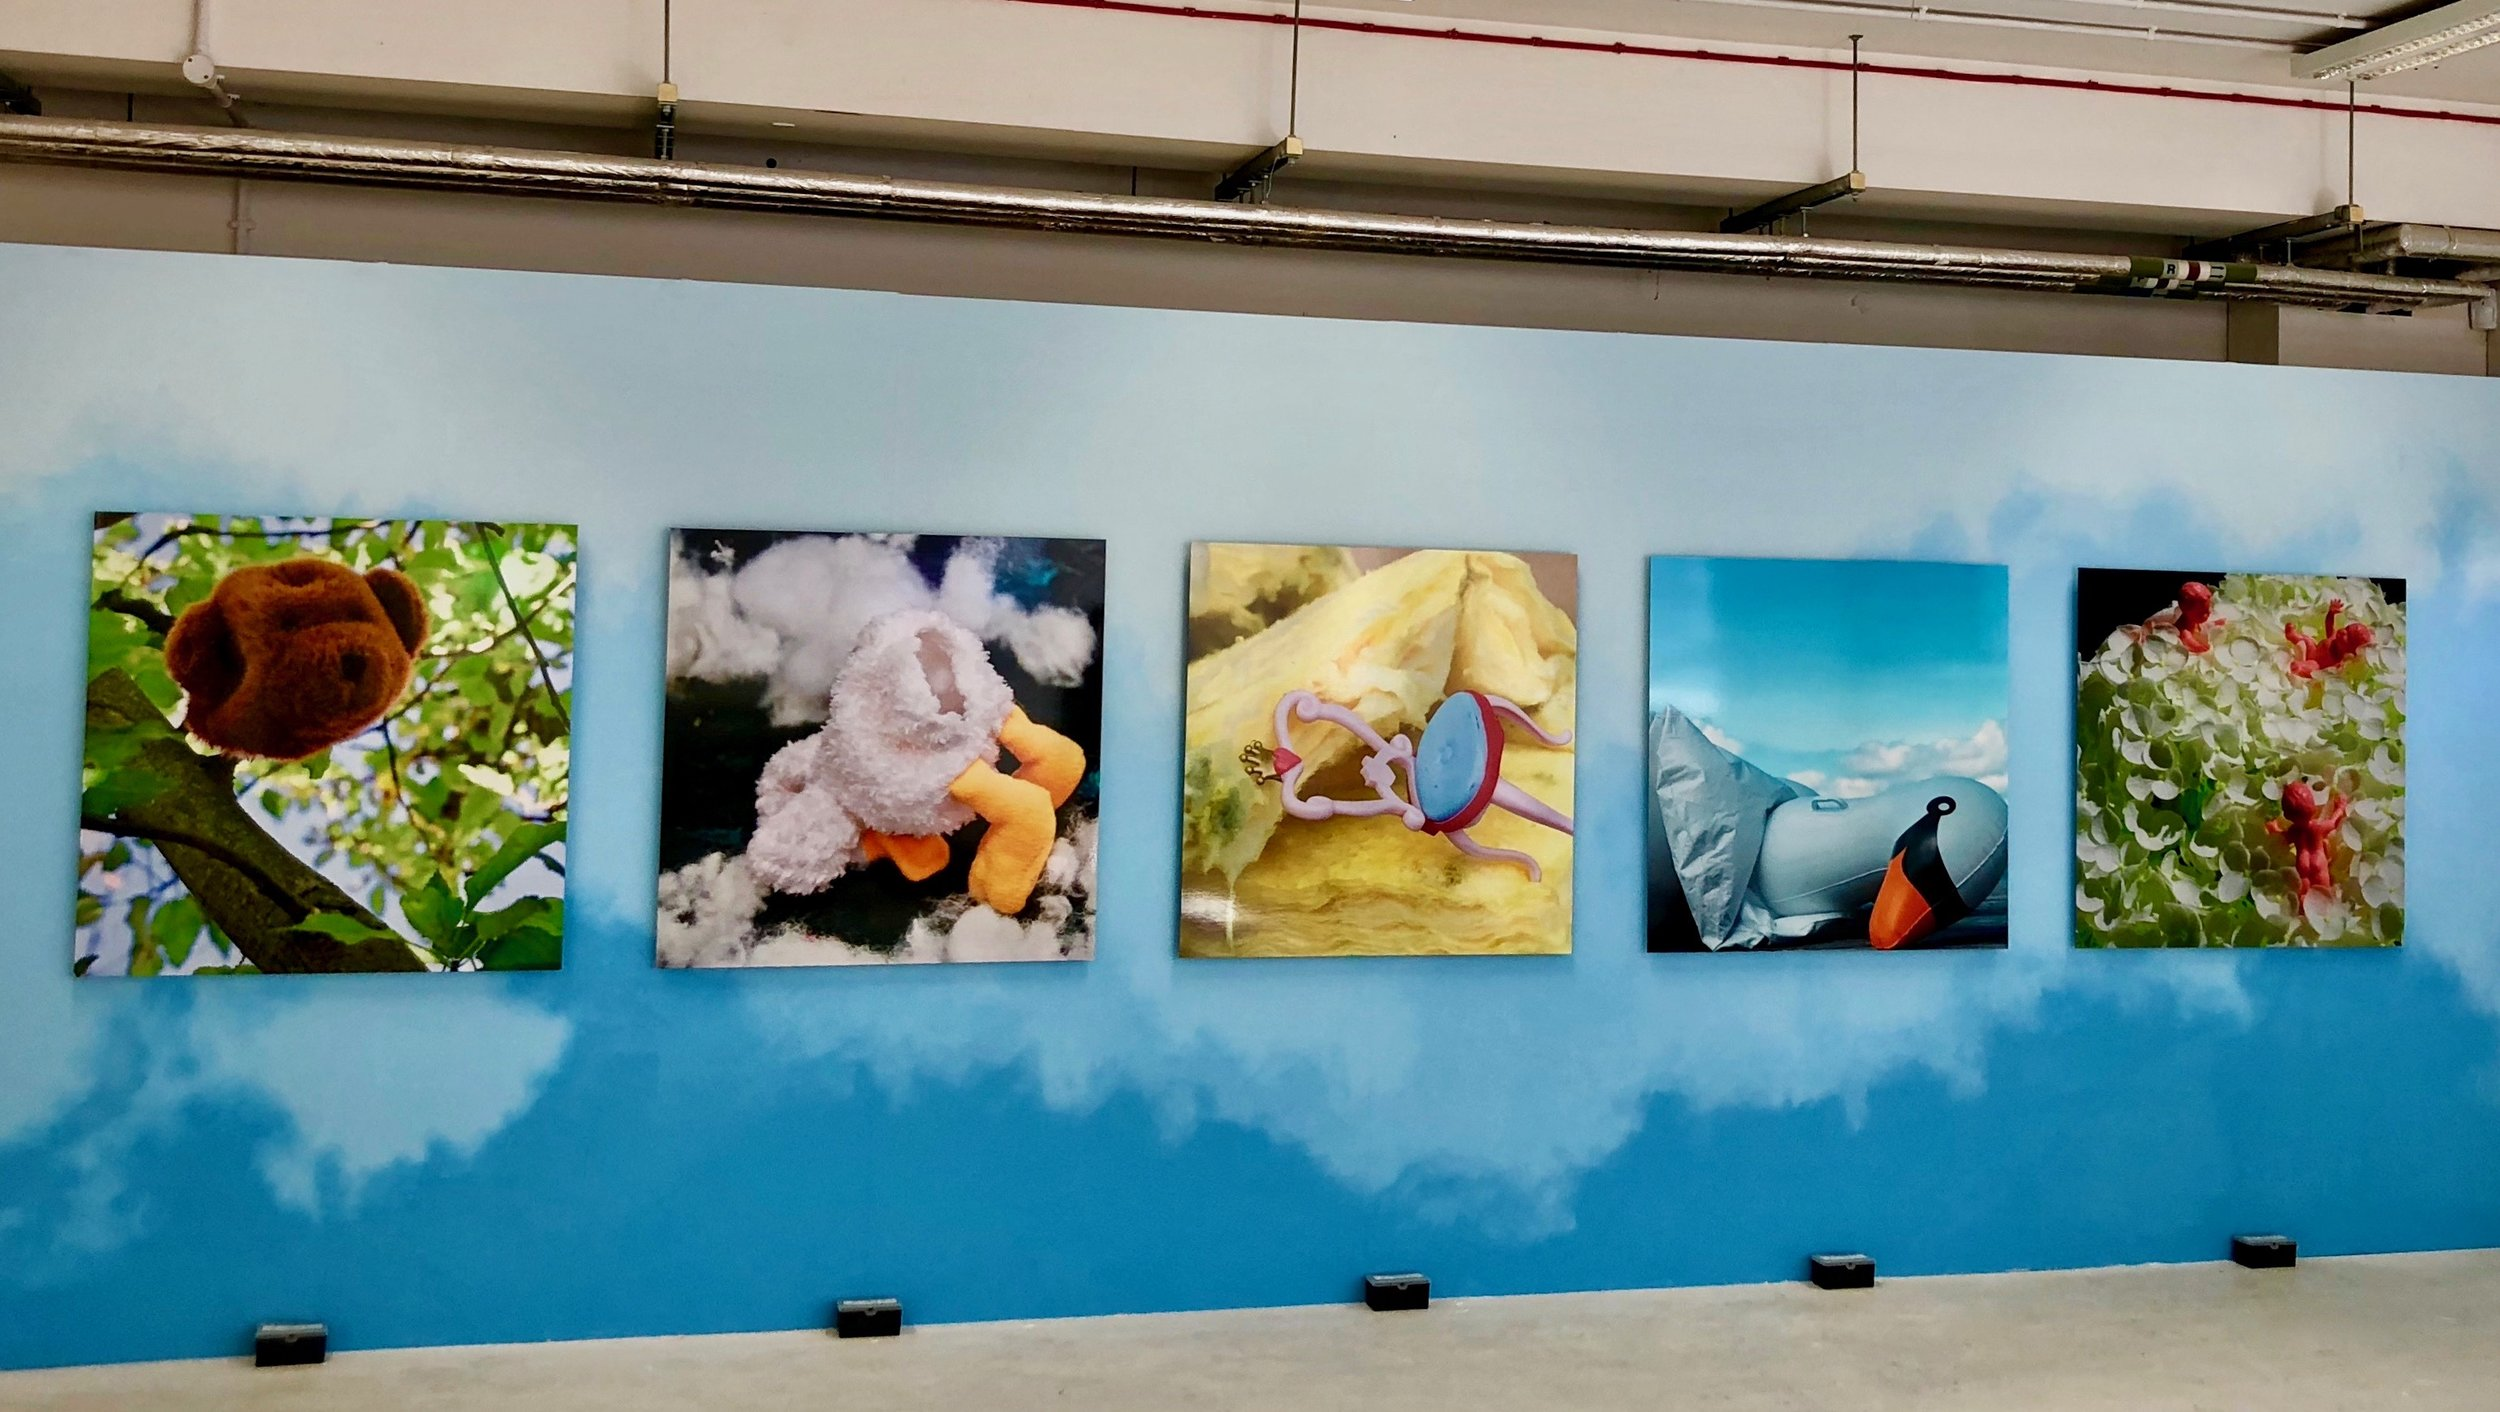 Woodland Aroma  (Gallery view) Large Format Photography on handprinted wall mural with artificial scent boxes 7m x 2.5m